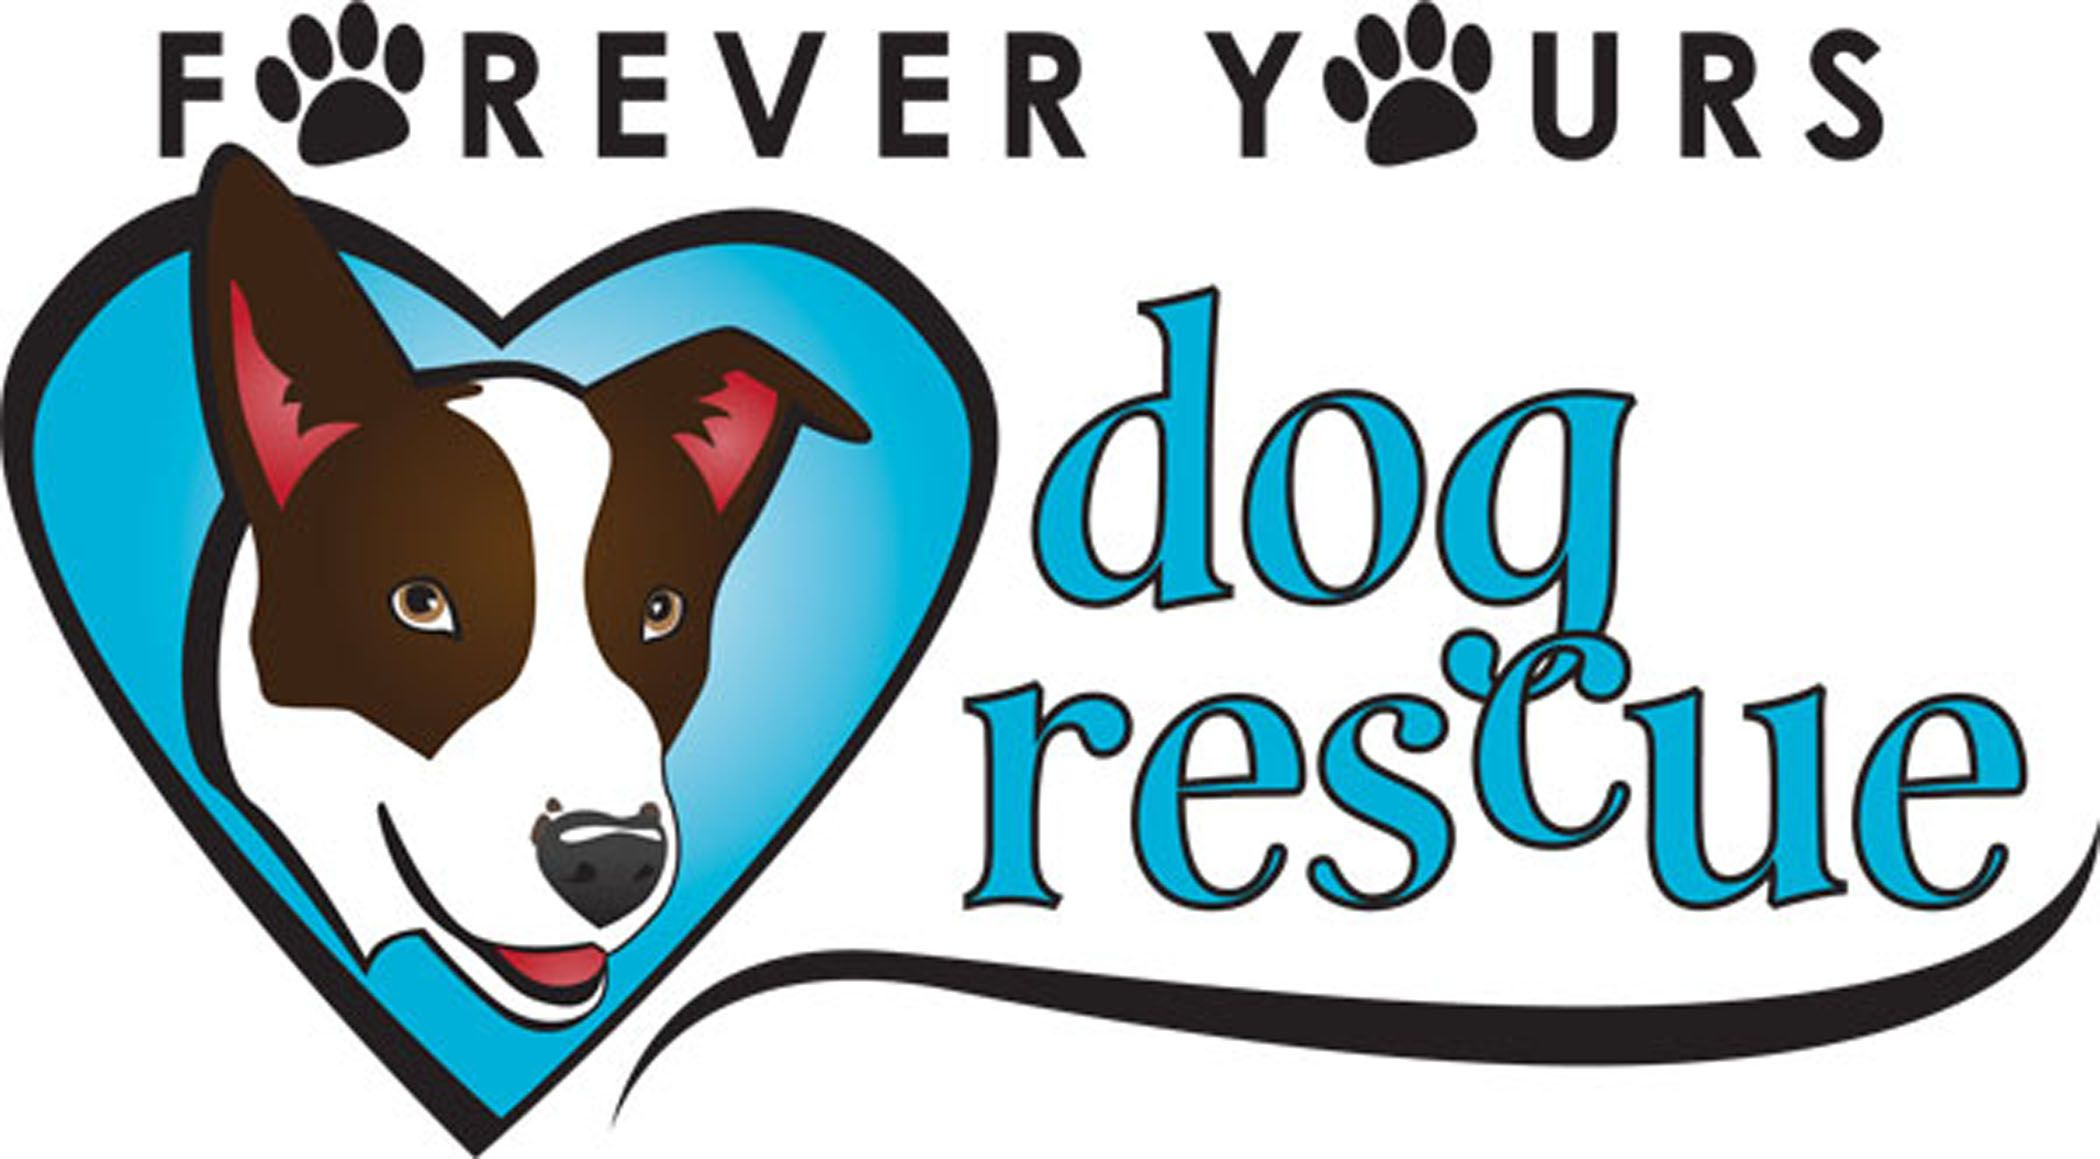 Get to know forever yours dog rescue rescue dogs your